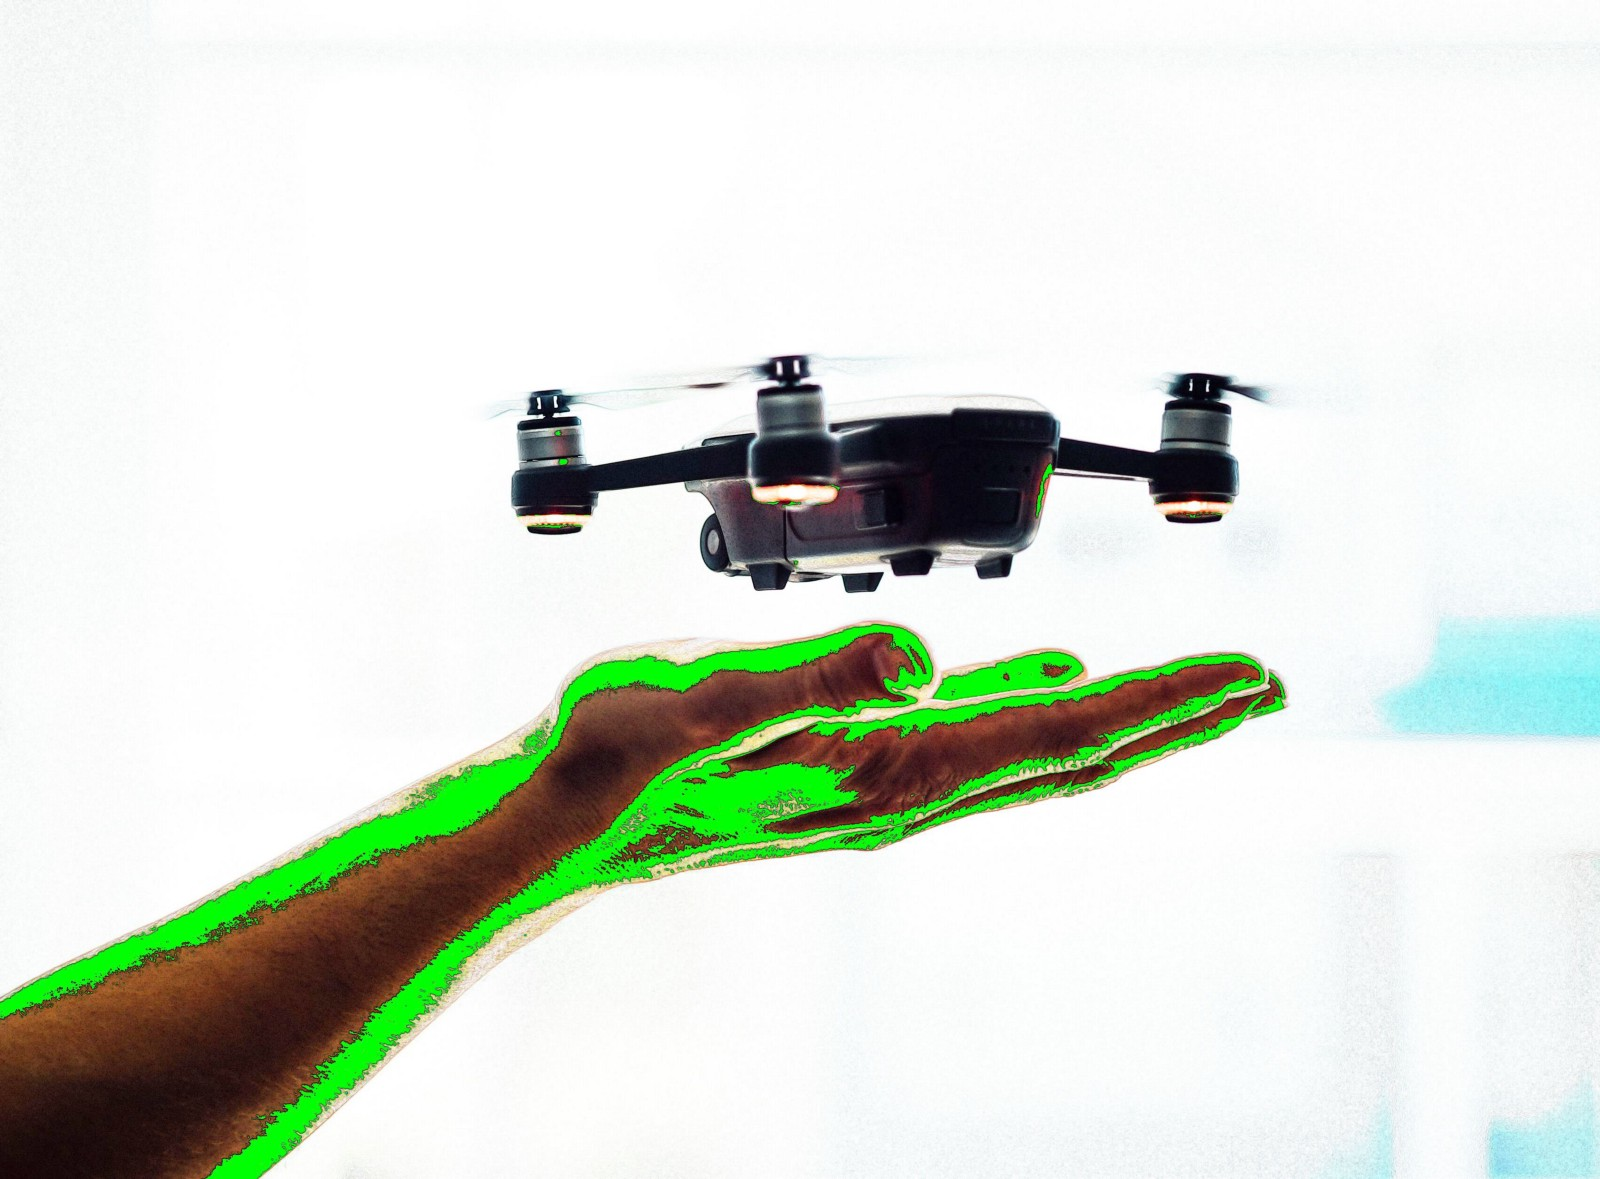 /the-last-mile-of-city-drone-deliveries-475010b26fb4 feature image